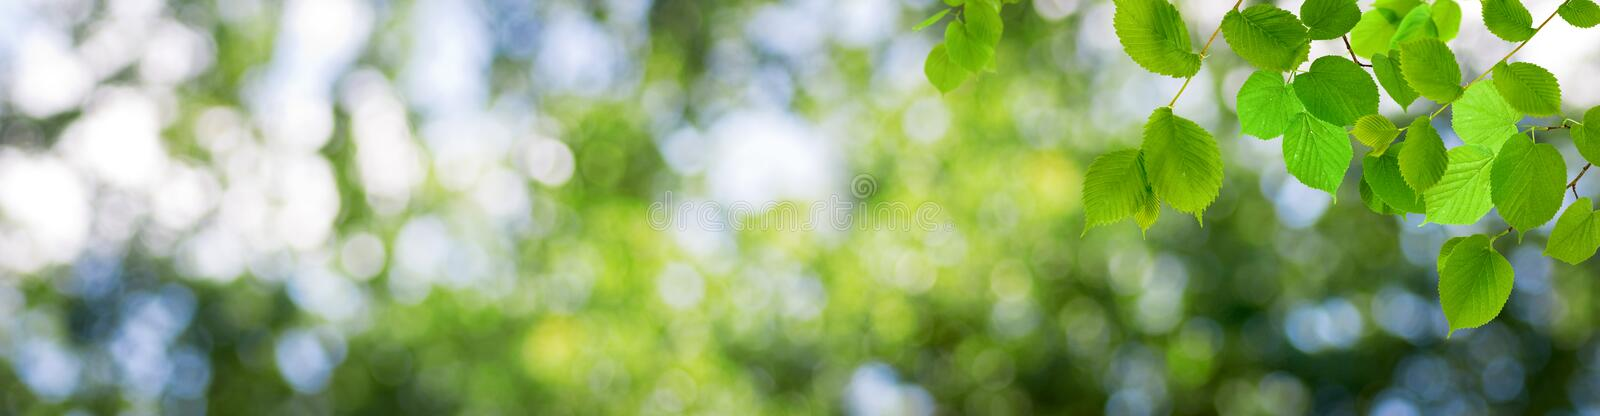 Green stylized balls on a beautiful abstract blurred natural background. Image of green stylized balls on a beautiful abstract blurred natural background.3d royalty free stock photos